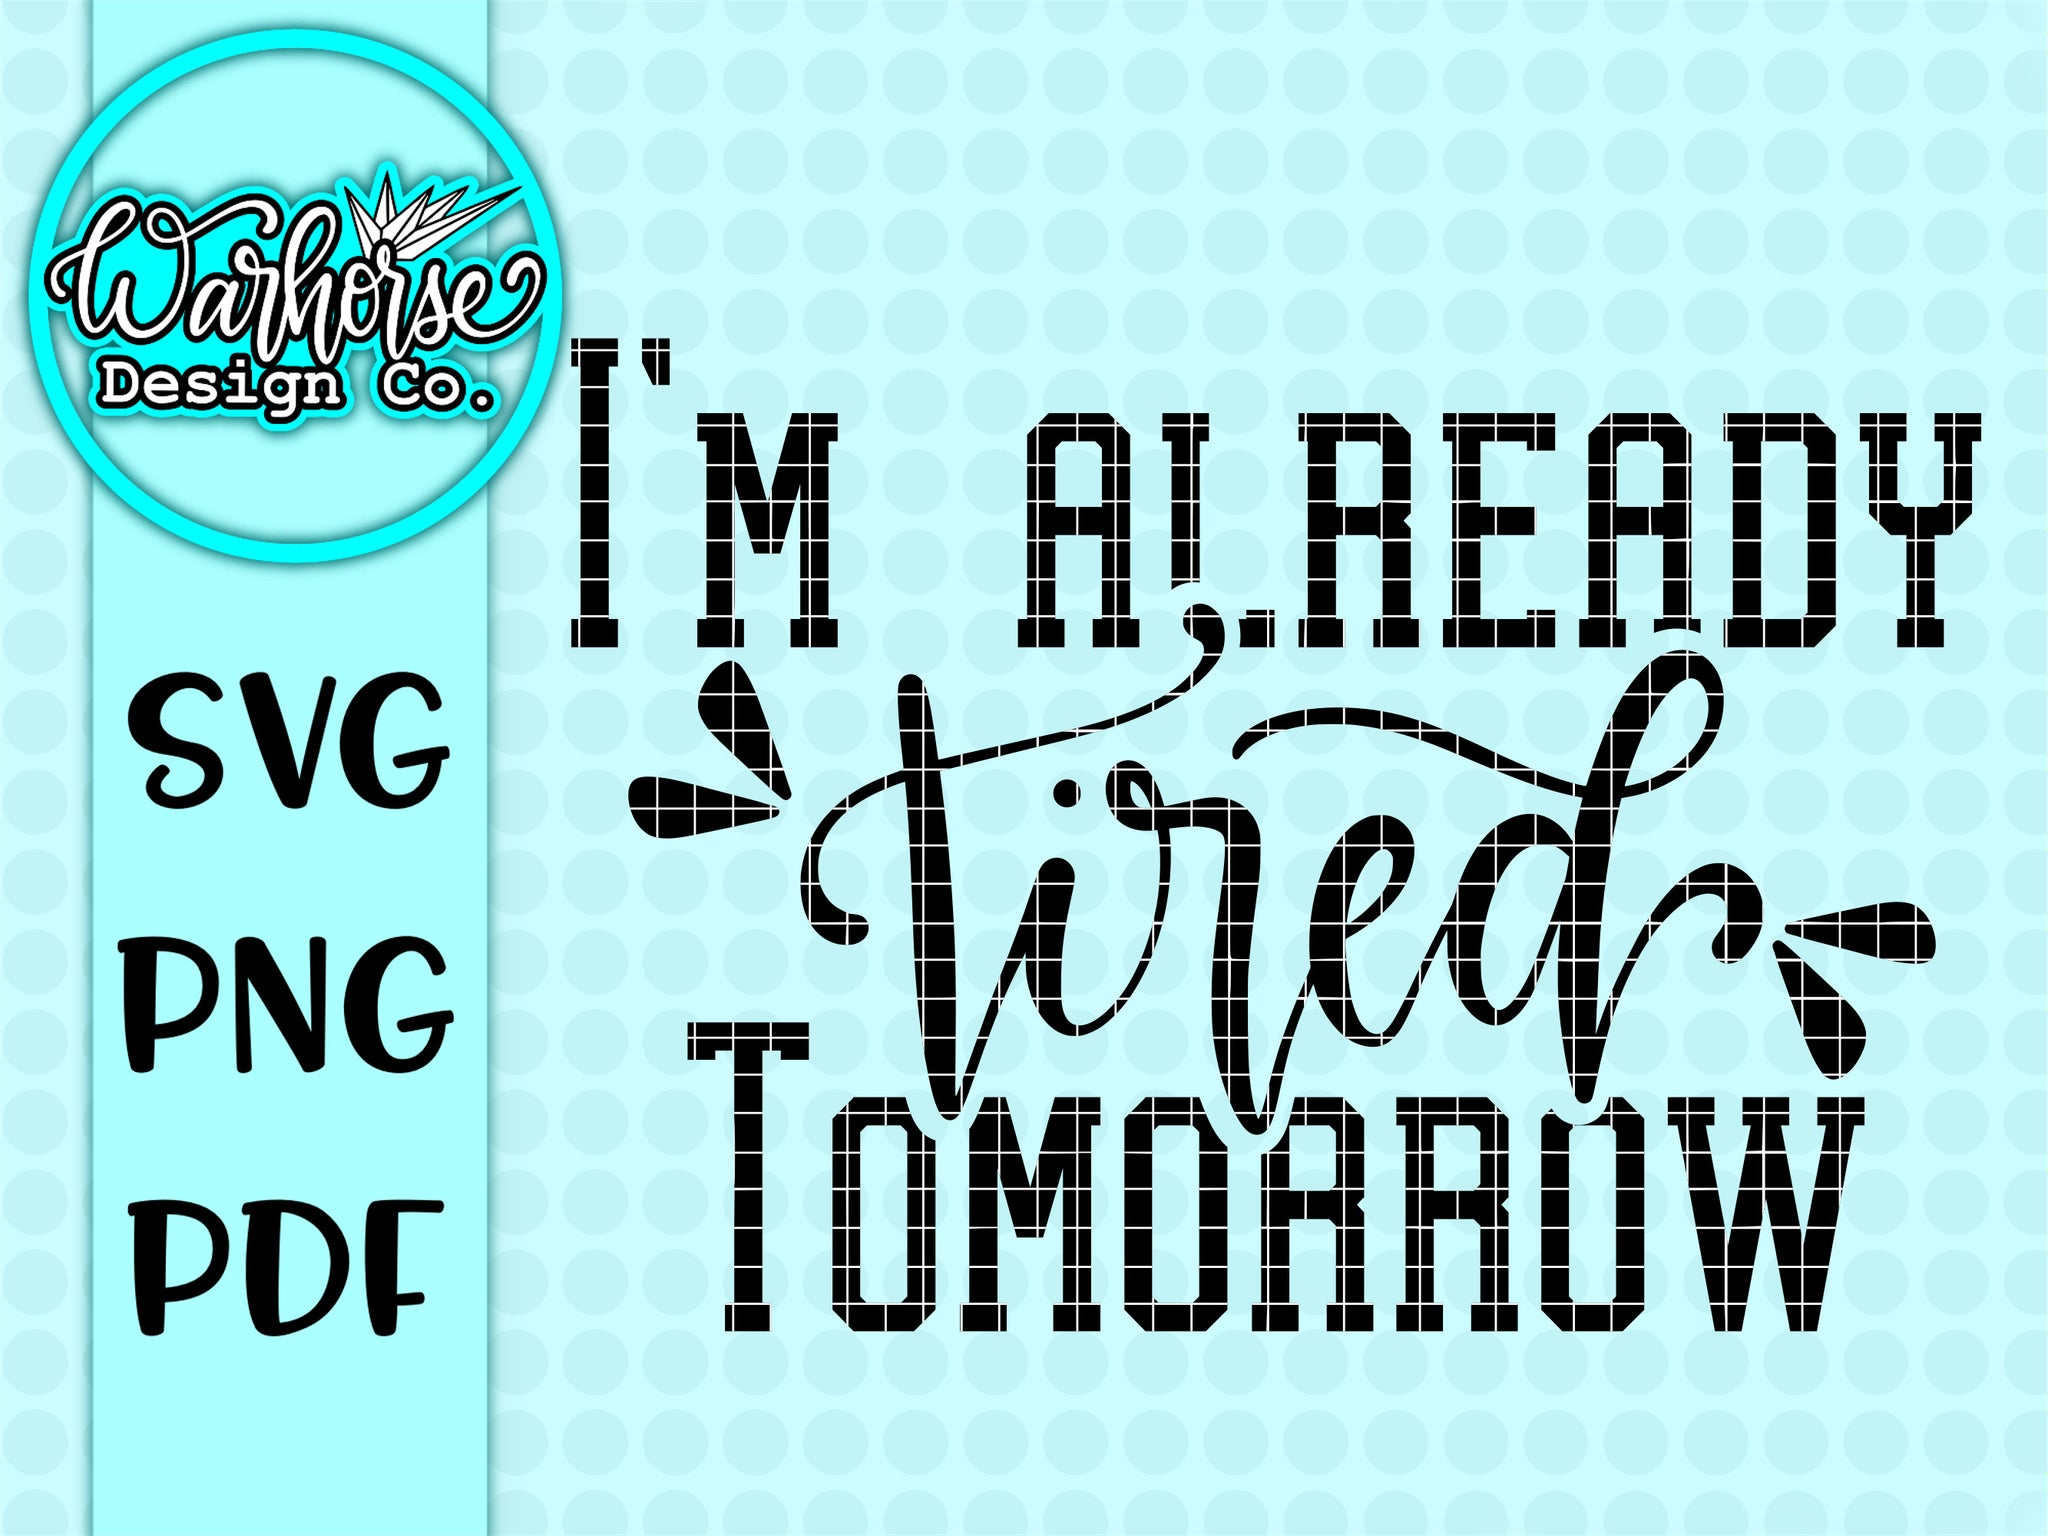 I'm already tired tomorrow SVG PNG PDF